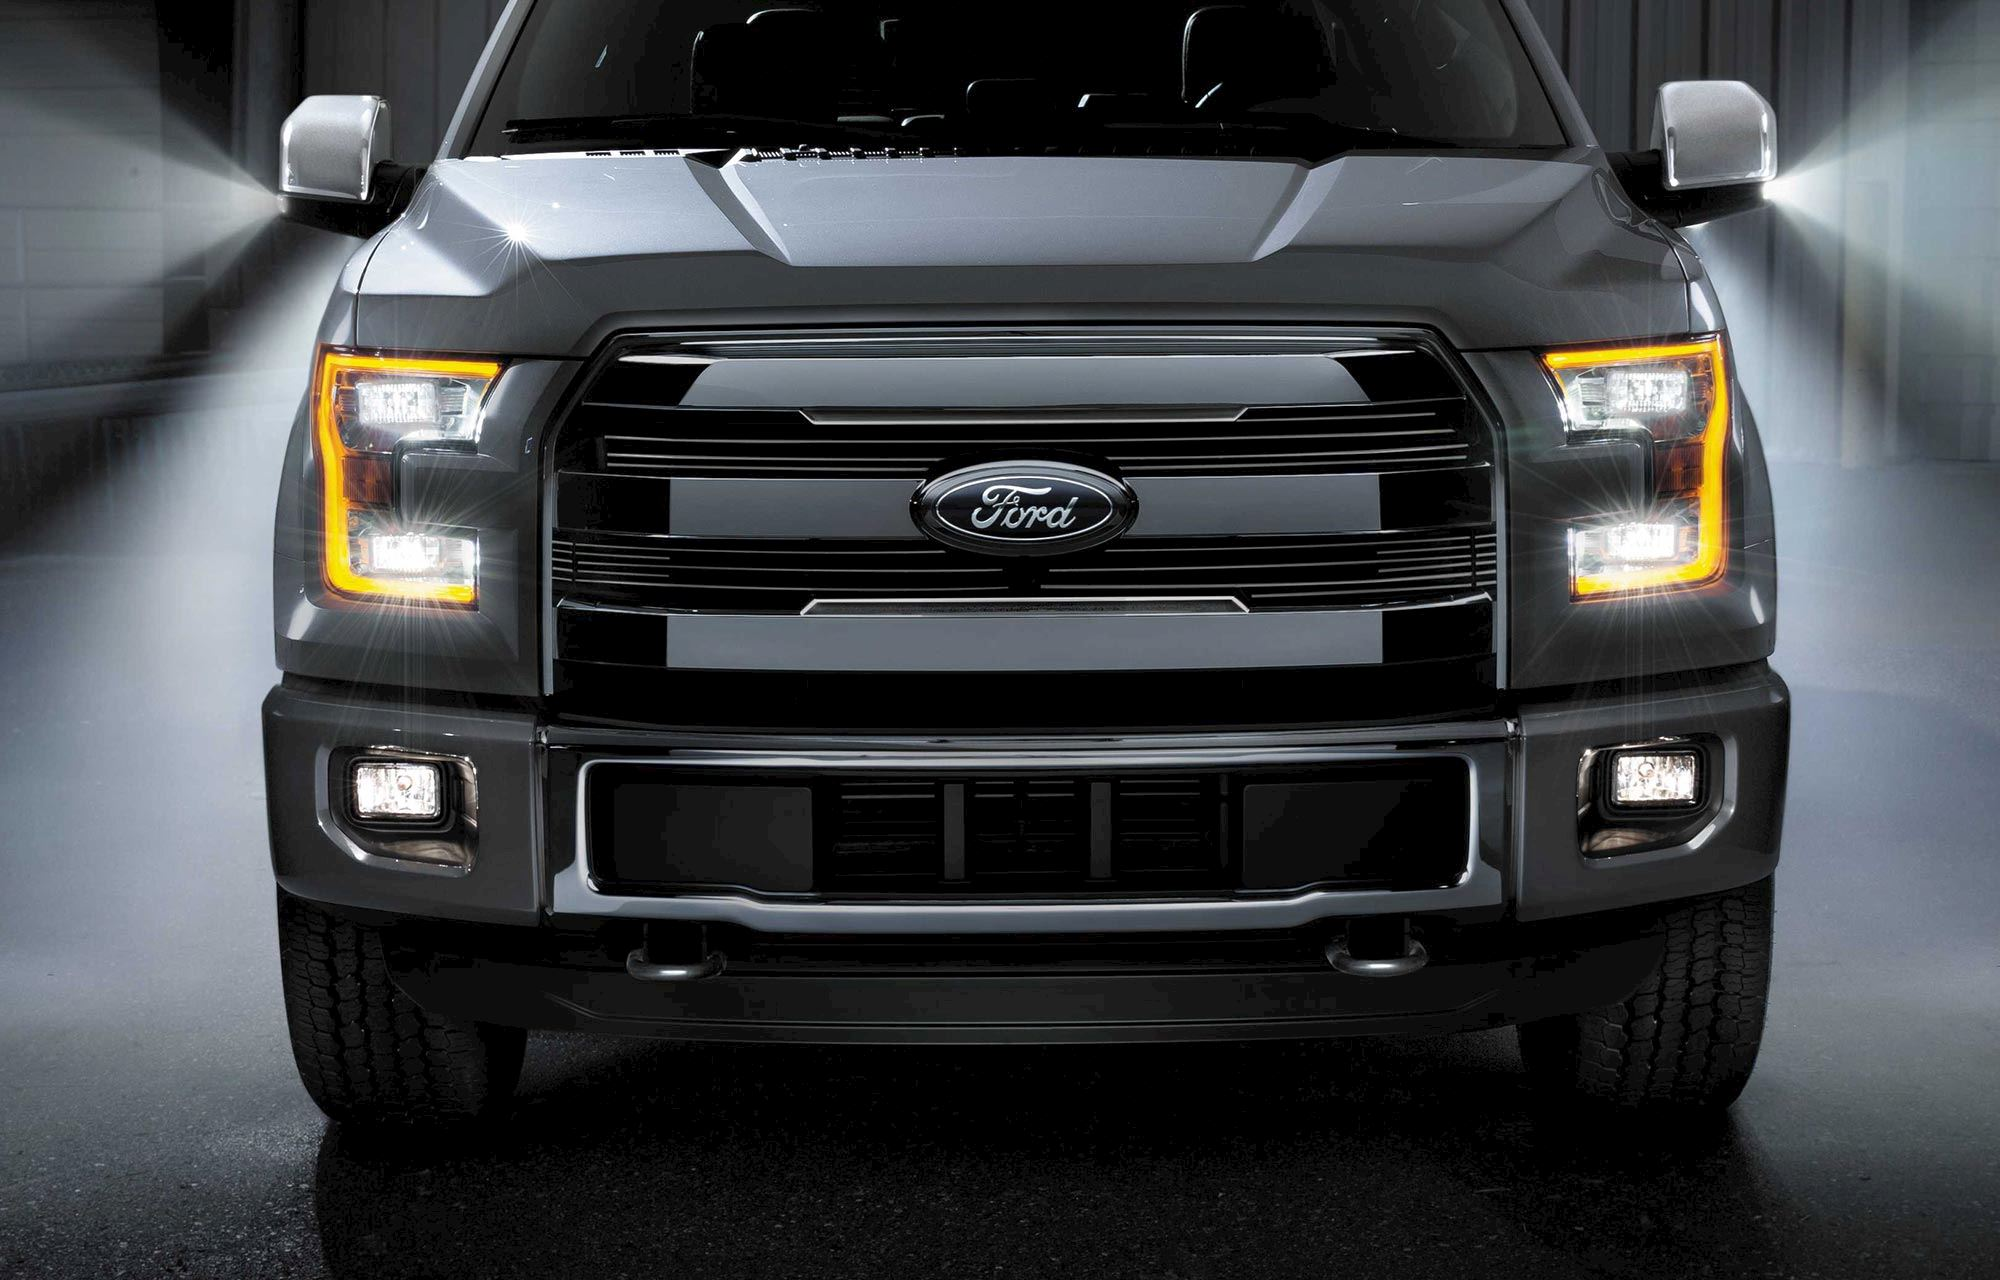 INTRODUCING THE FORD F-150